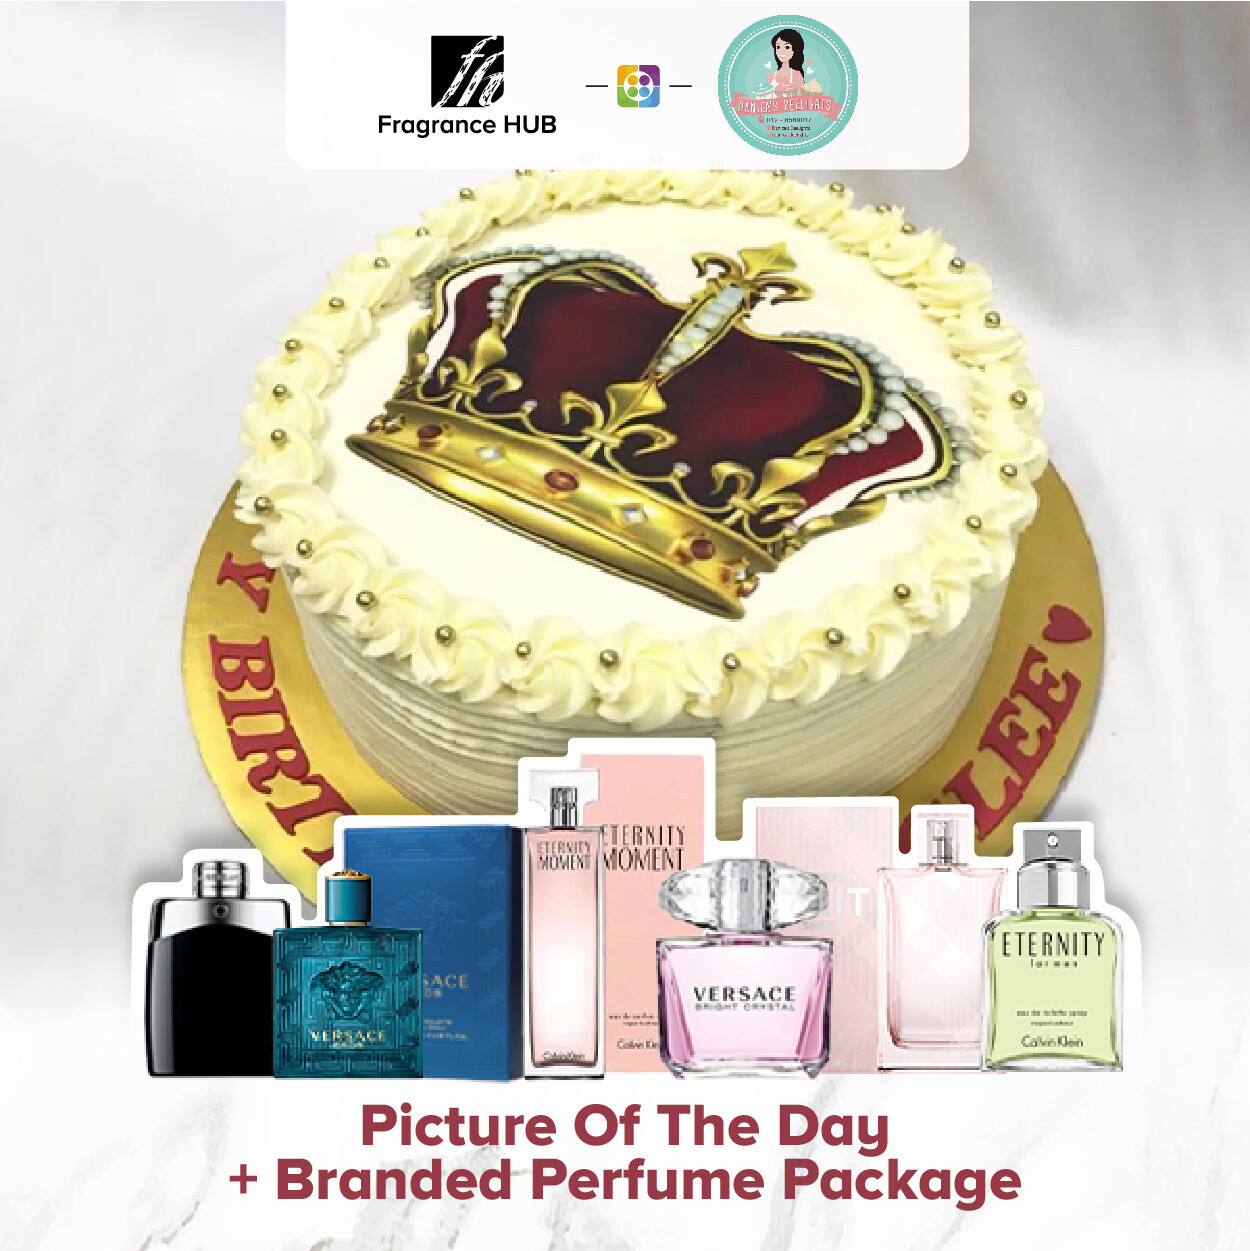 Picture Of The Day + Fragrance Hub Branded Perfume (By: Danica's Delight from KL)